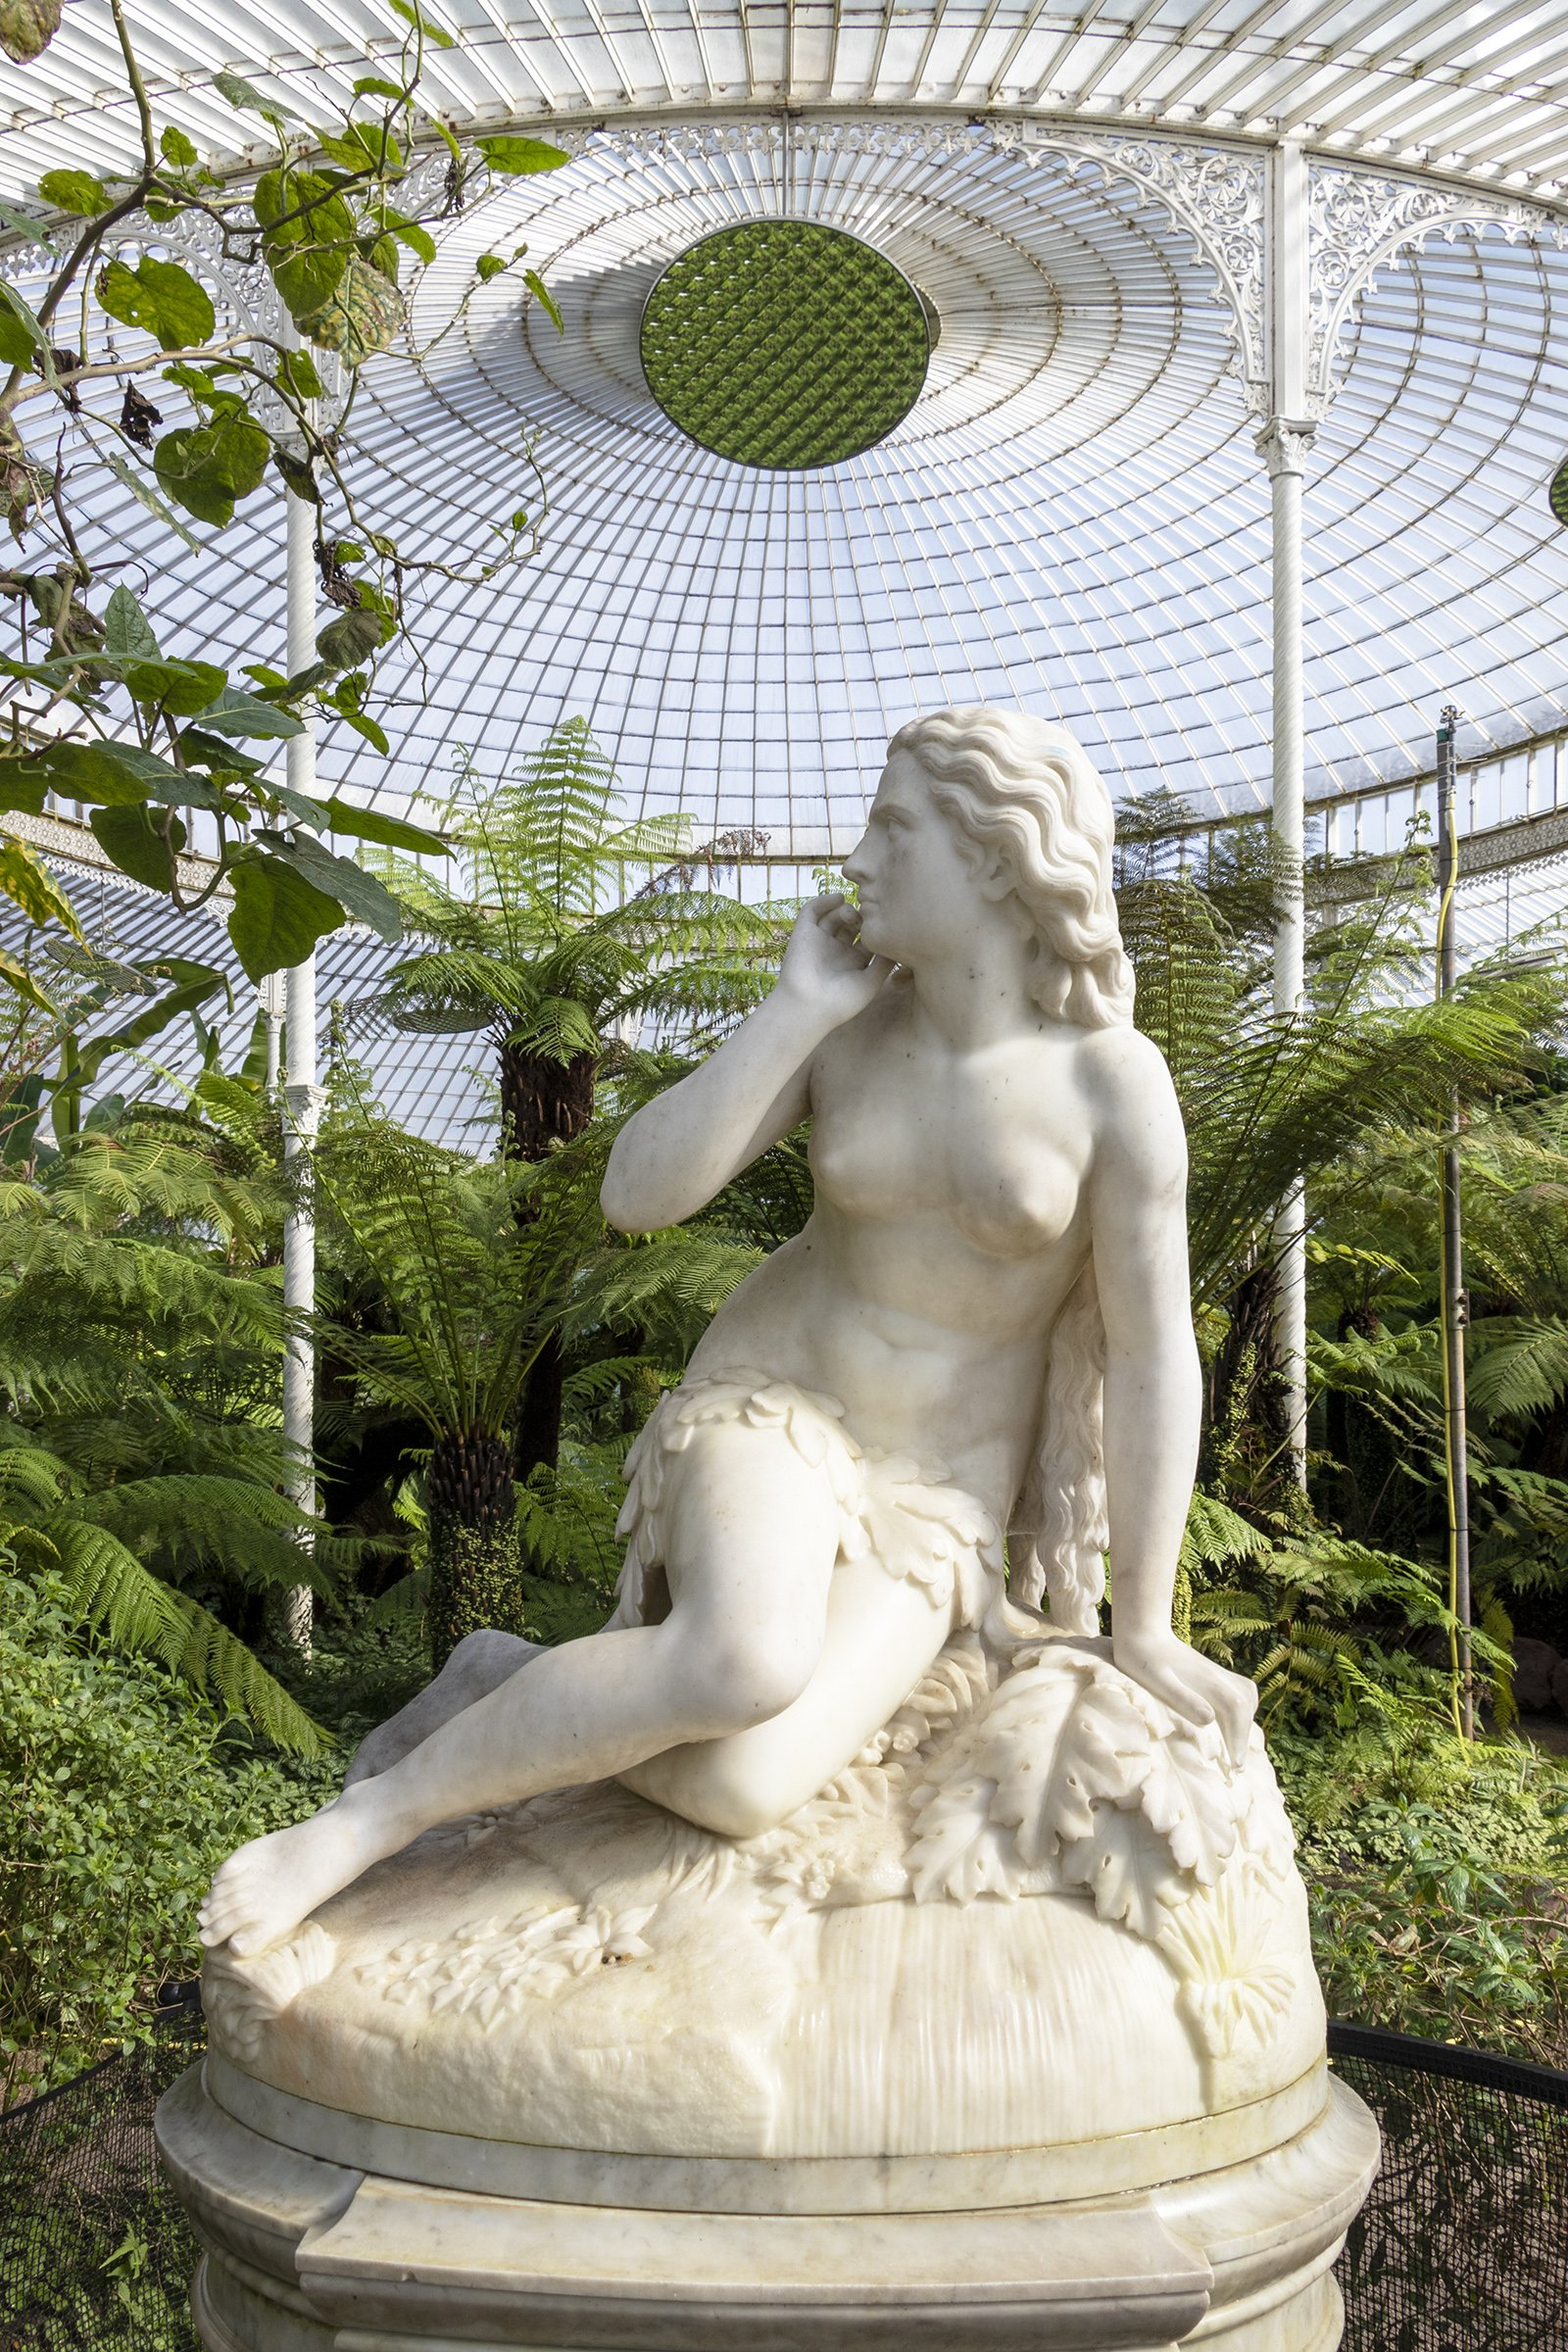 Marble statue of Eve in Kibble Palace, Glasgow Botanic Gardens